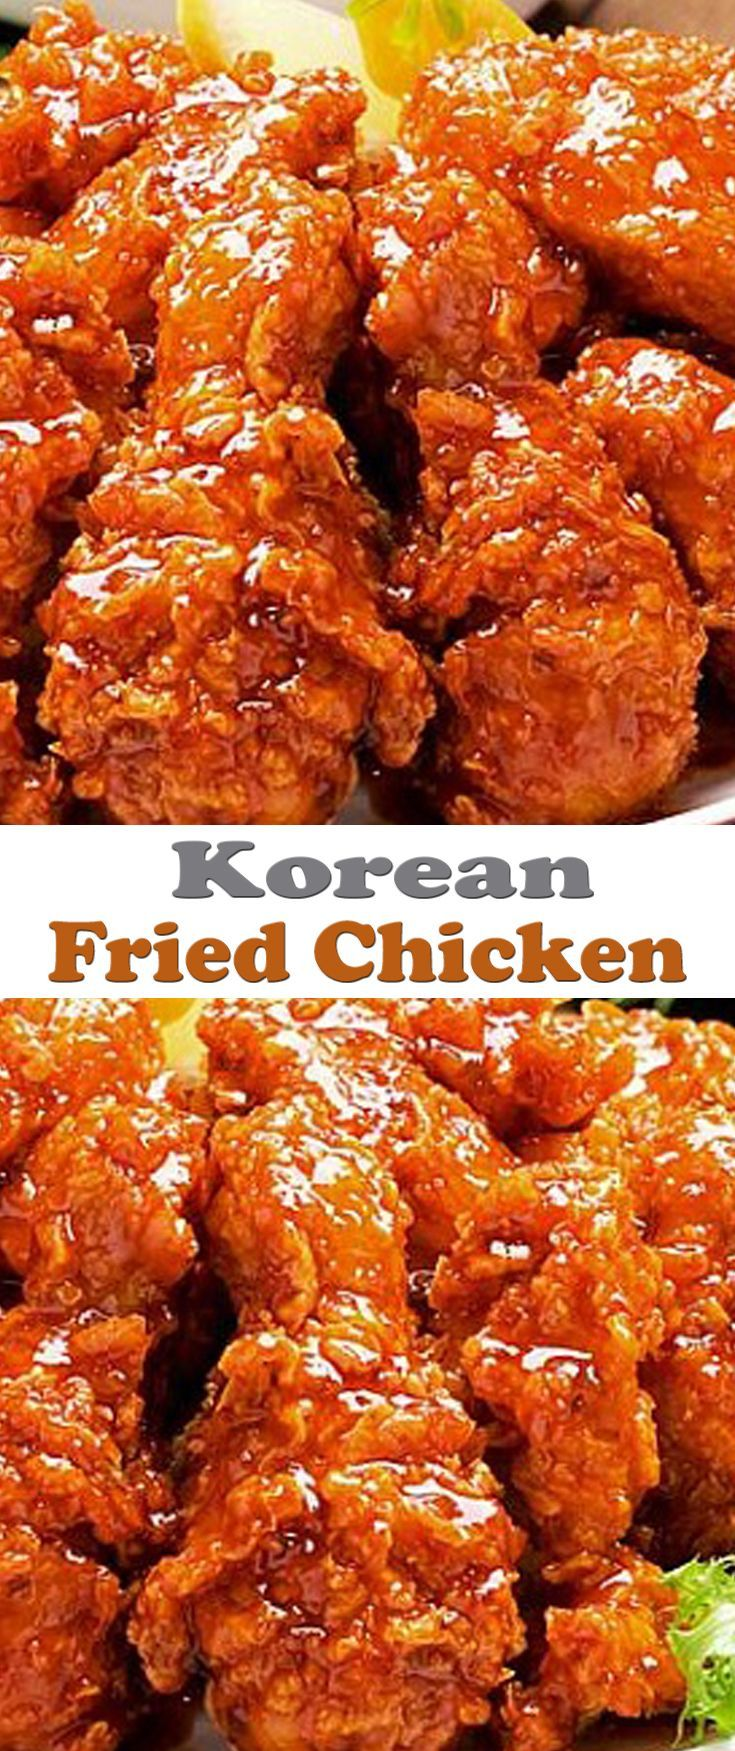 Korean Fried Chicken Recipe. #CompleteRecipes.com #recipe #recipes #food #foodgasm #cleaneating #healthyfood #healthy #healthyrecipes